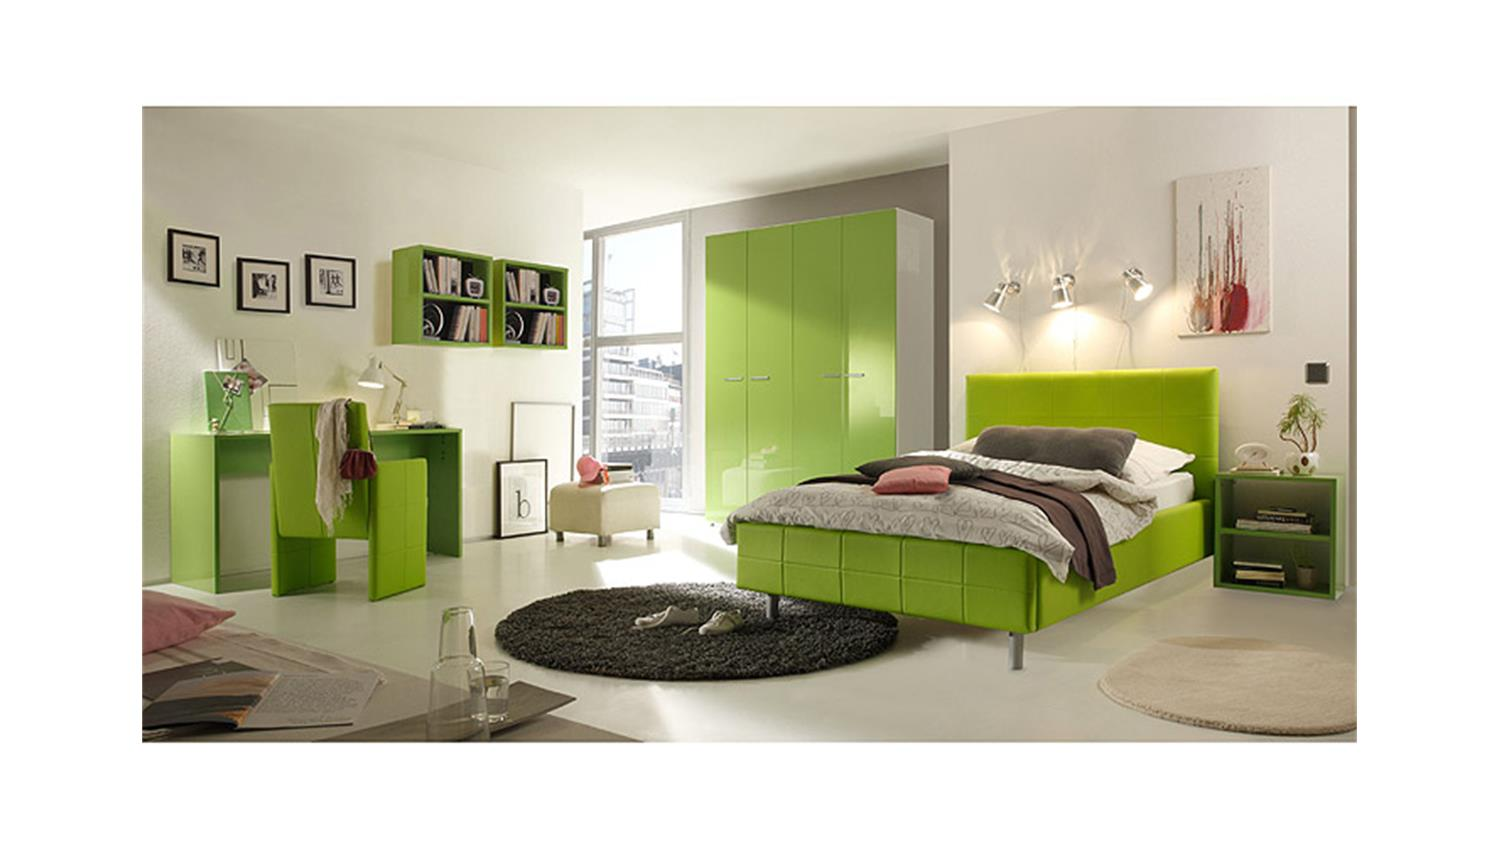 jugendzimmer smart kiwi gr n hochglanz wei. Black Bedroom Furniture Sets. Home Design Ideas